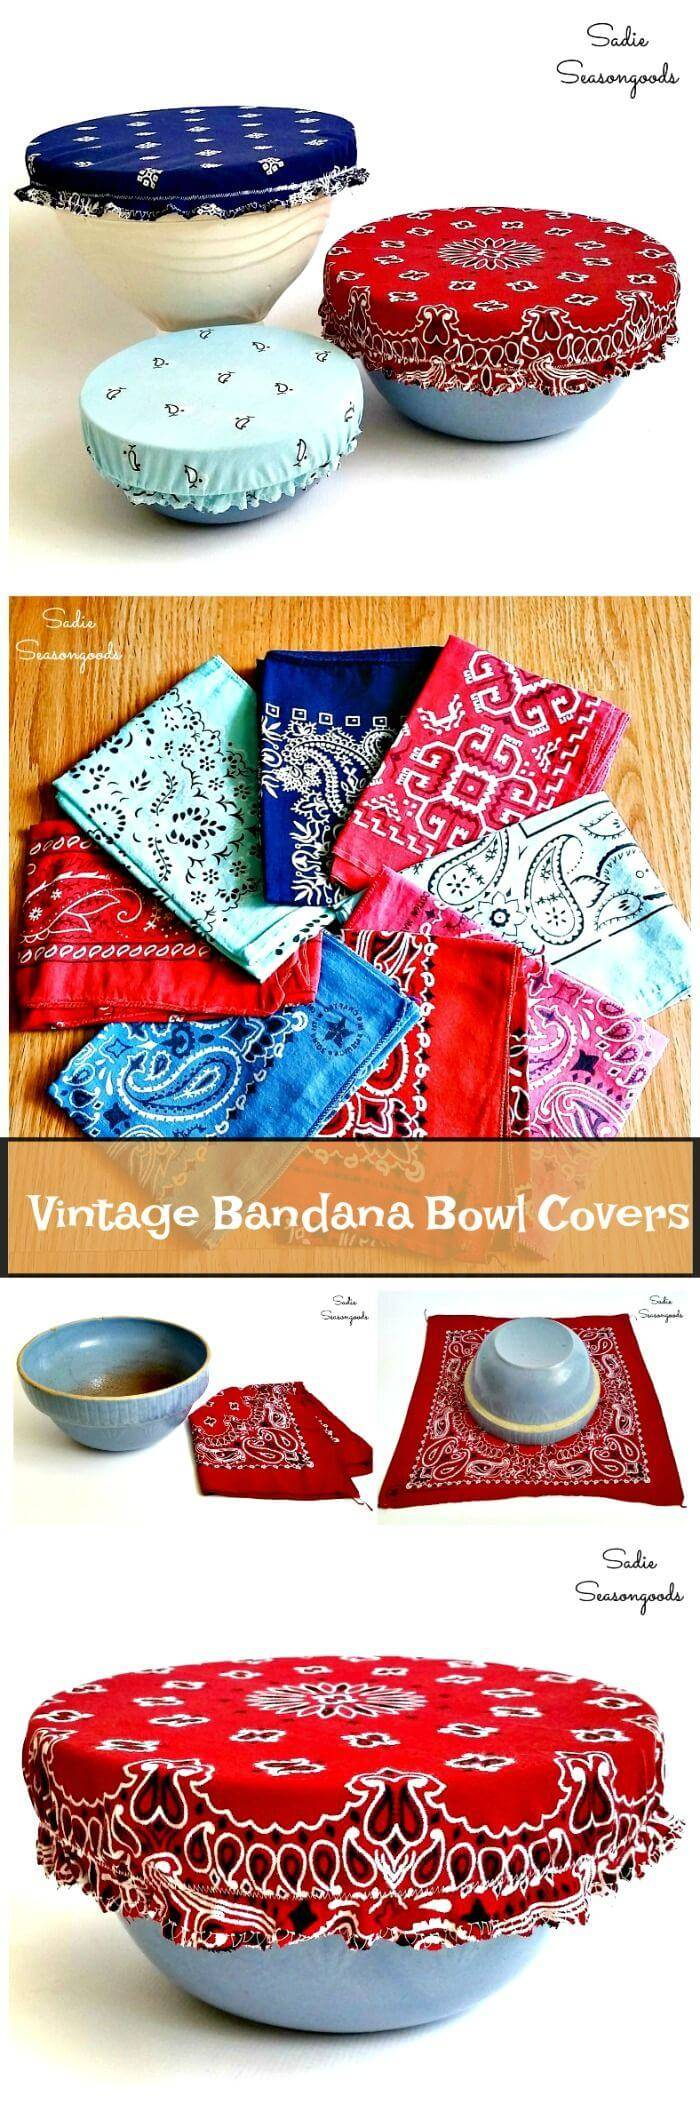 Vintage Bandana Bowl Covers